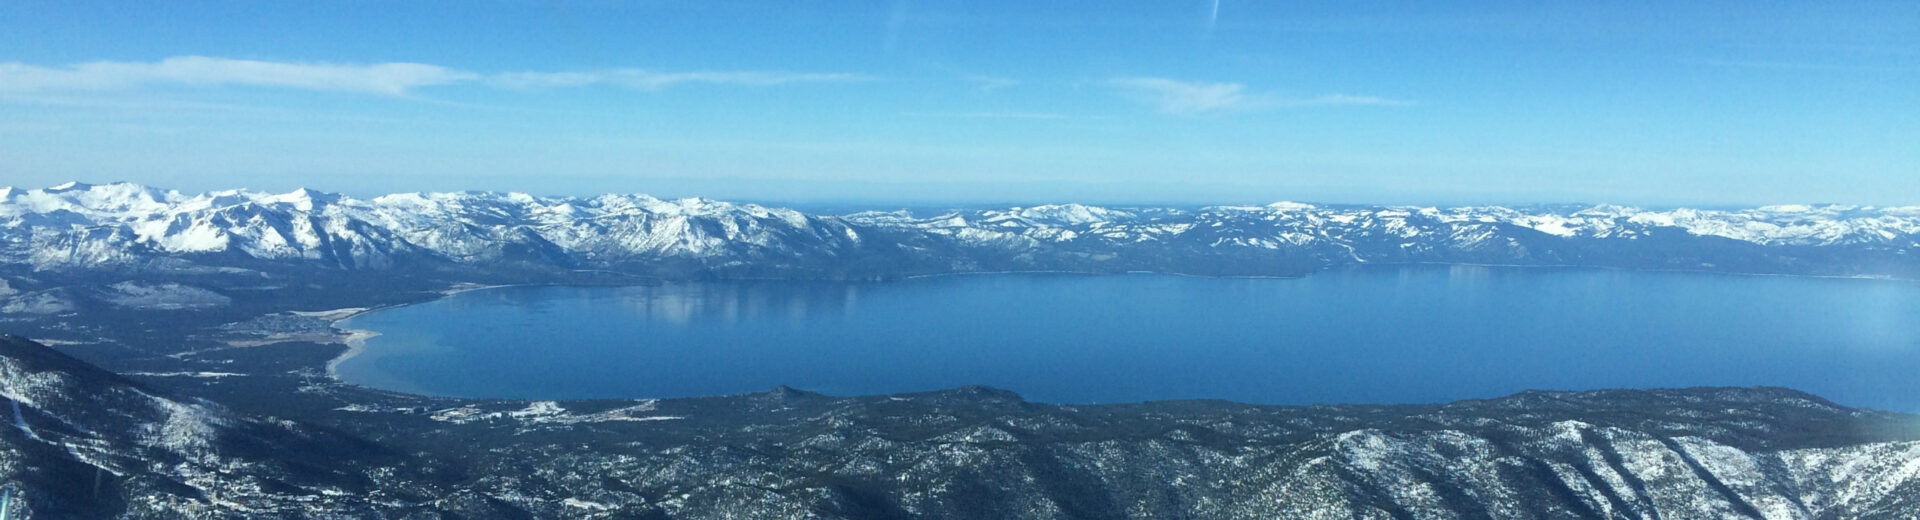 Charter Phone Service >> Skydiving in South Lake Tahoe & Skydiving Center | Skydive Lake Tahoe